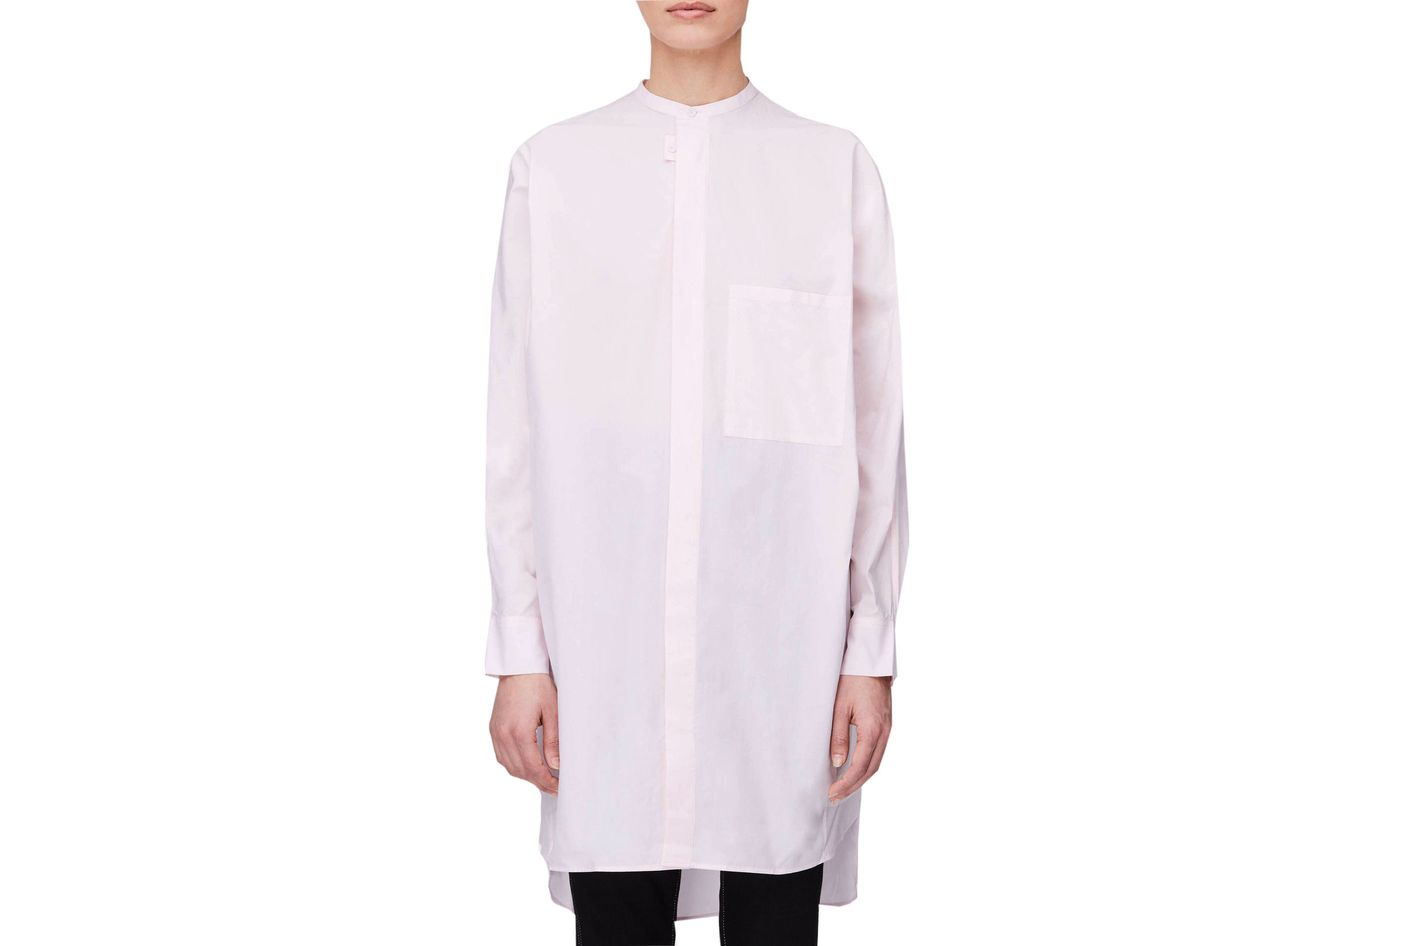 Acne Siva Dress Shirt